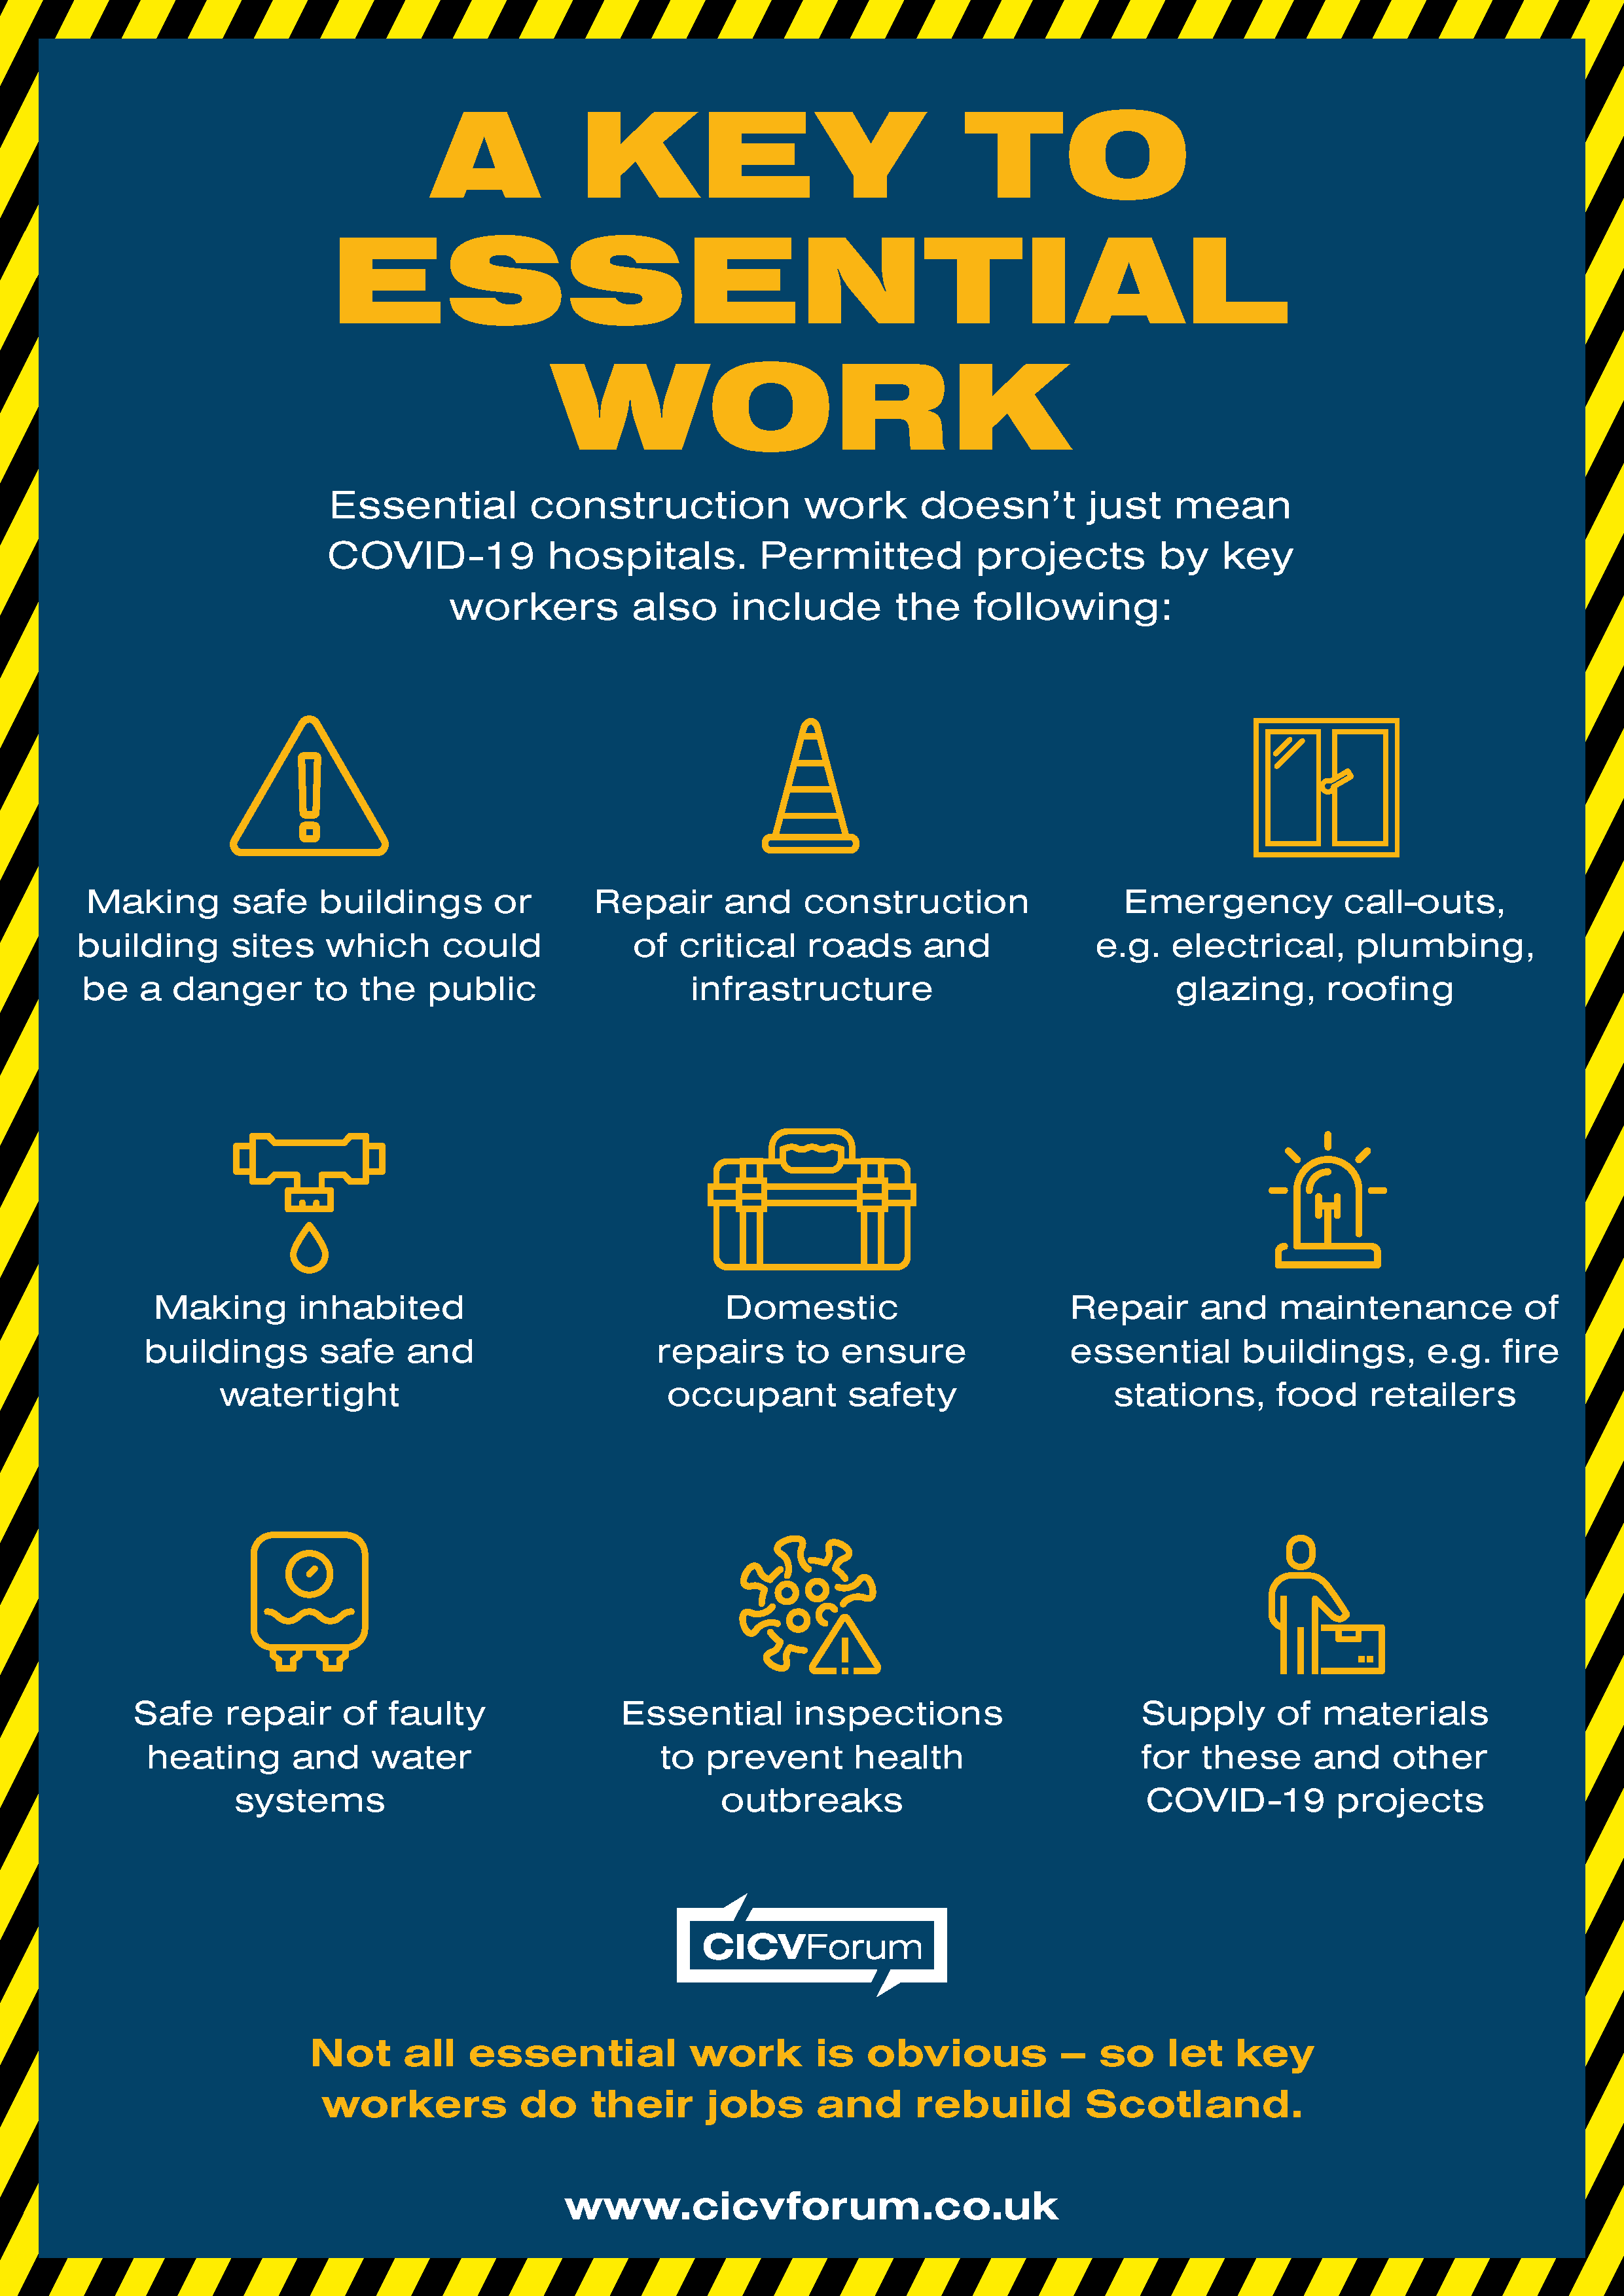 CICV Forum key worker infographic